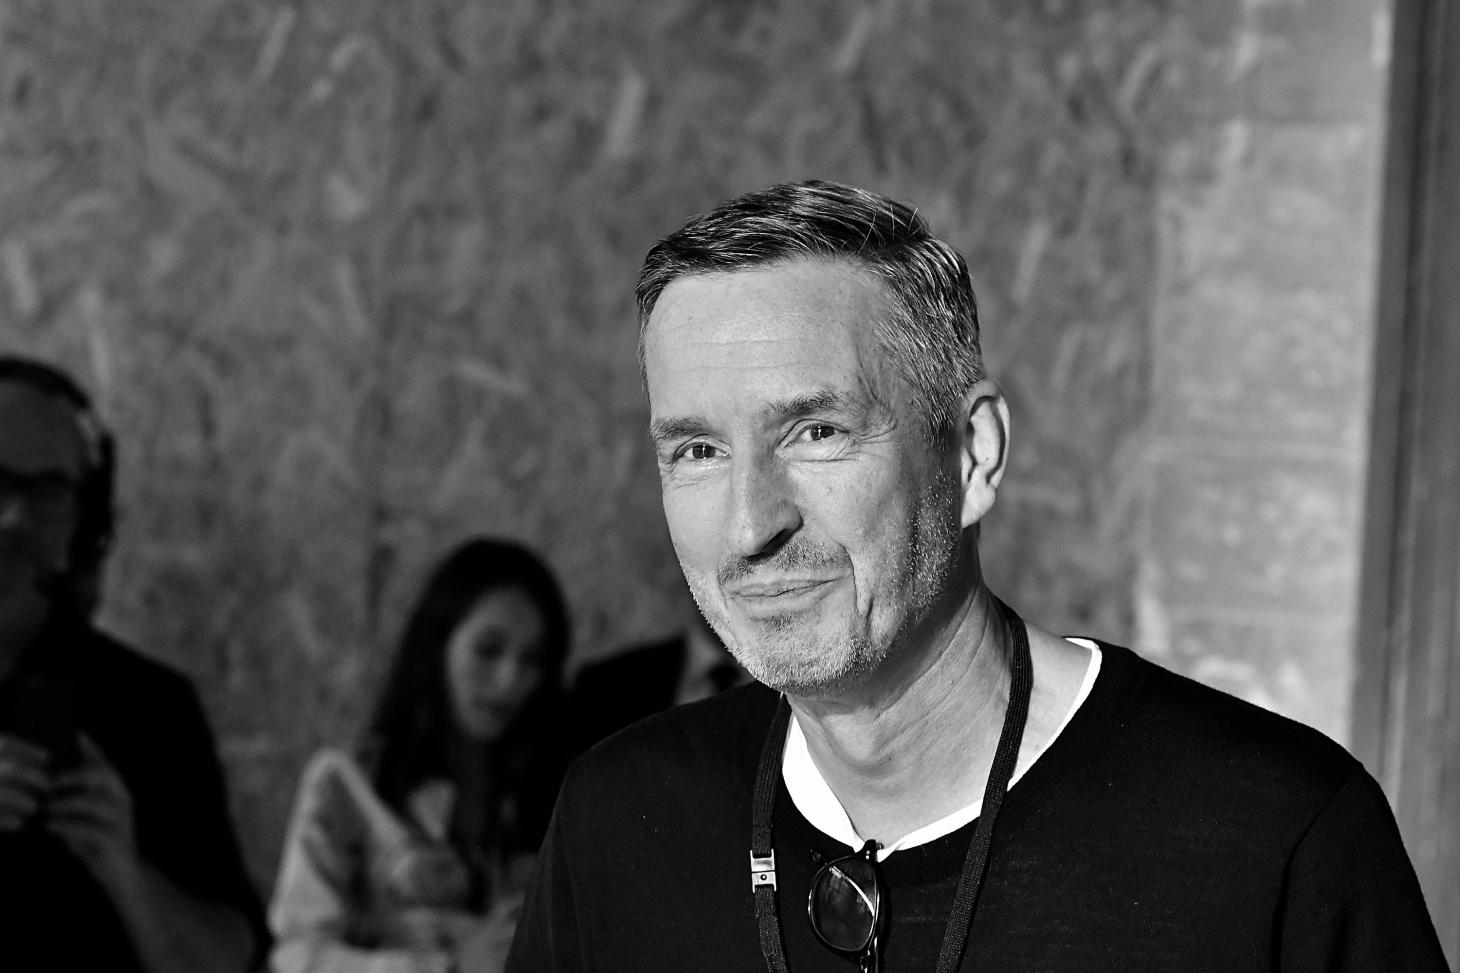 A portrait of Dries Van Noten